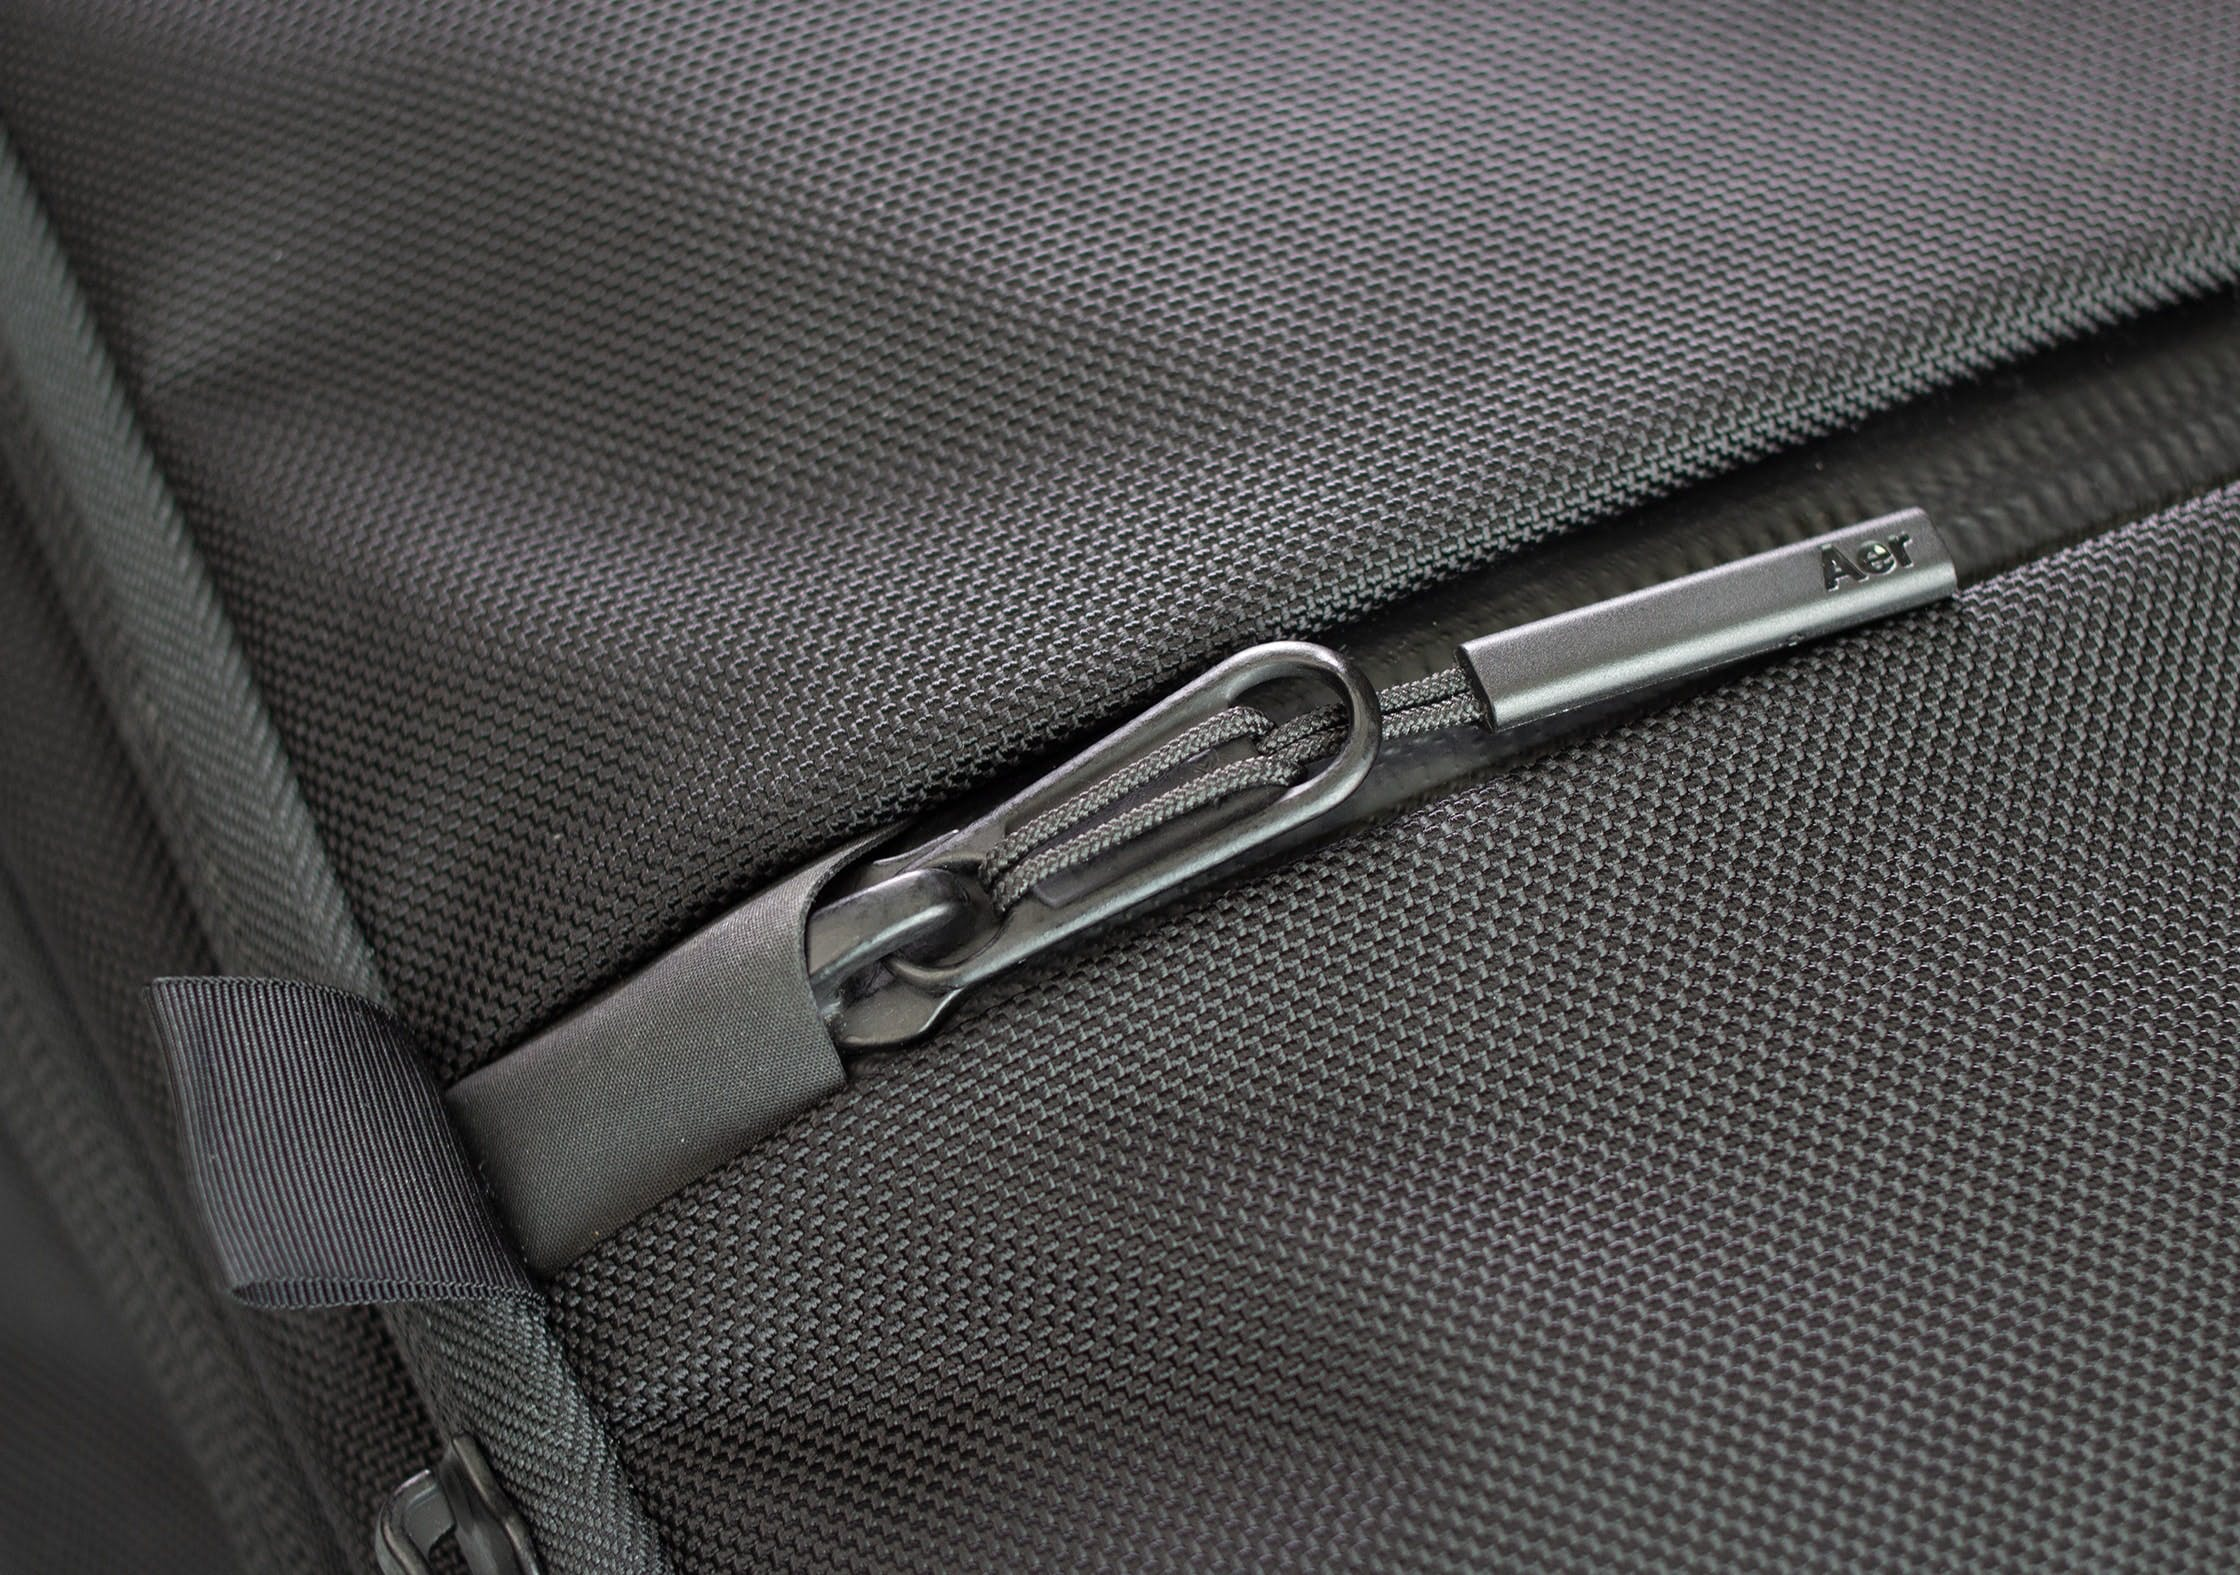 Aer Travel Pack 2 Aquaguard Zipper System